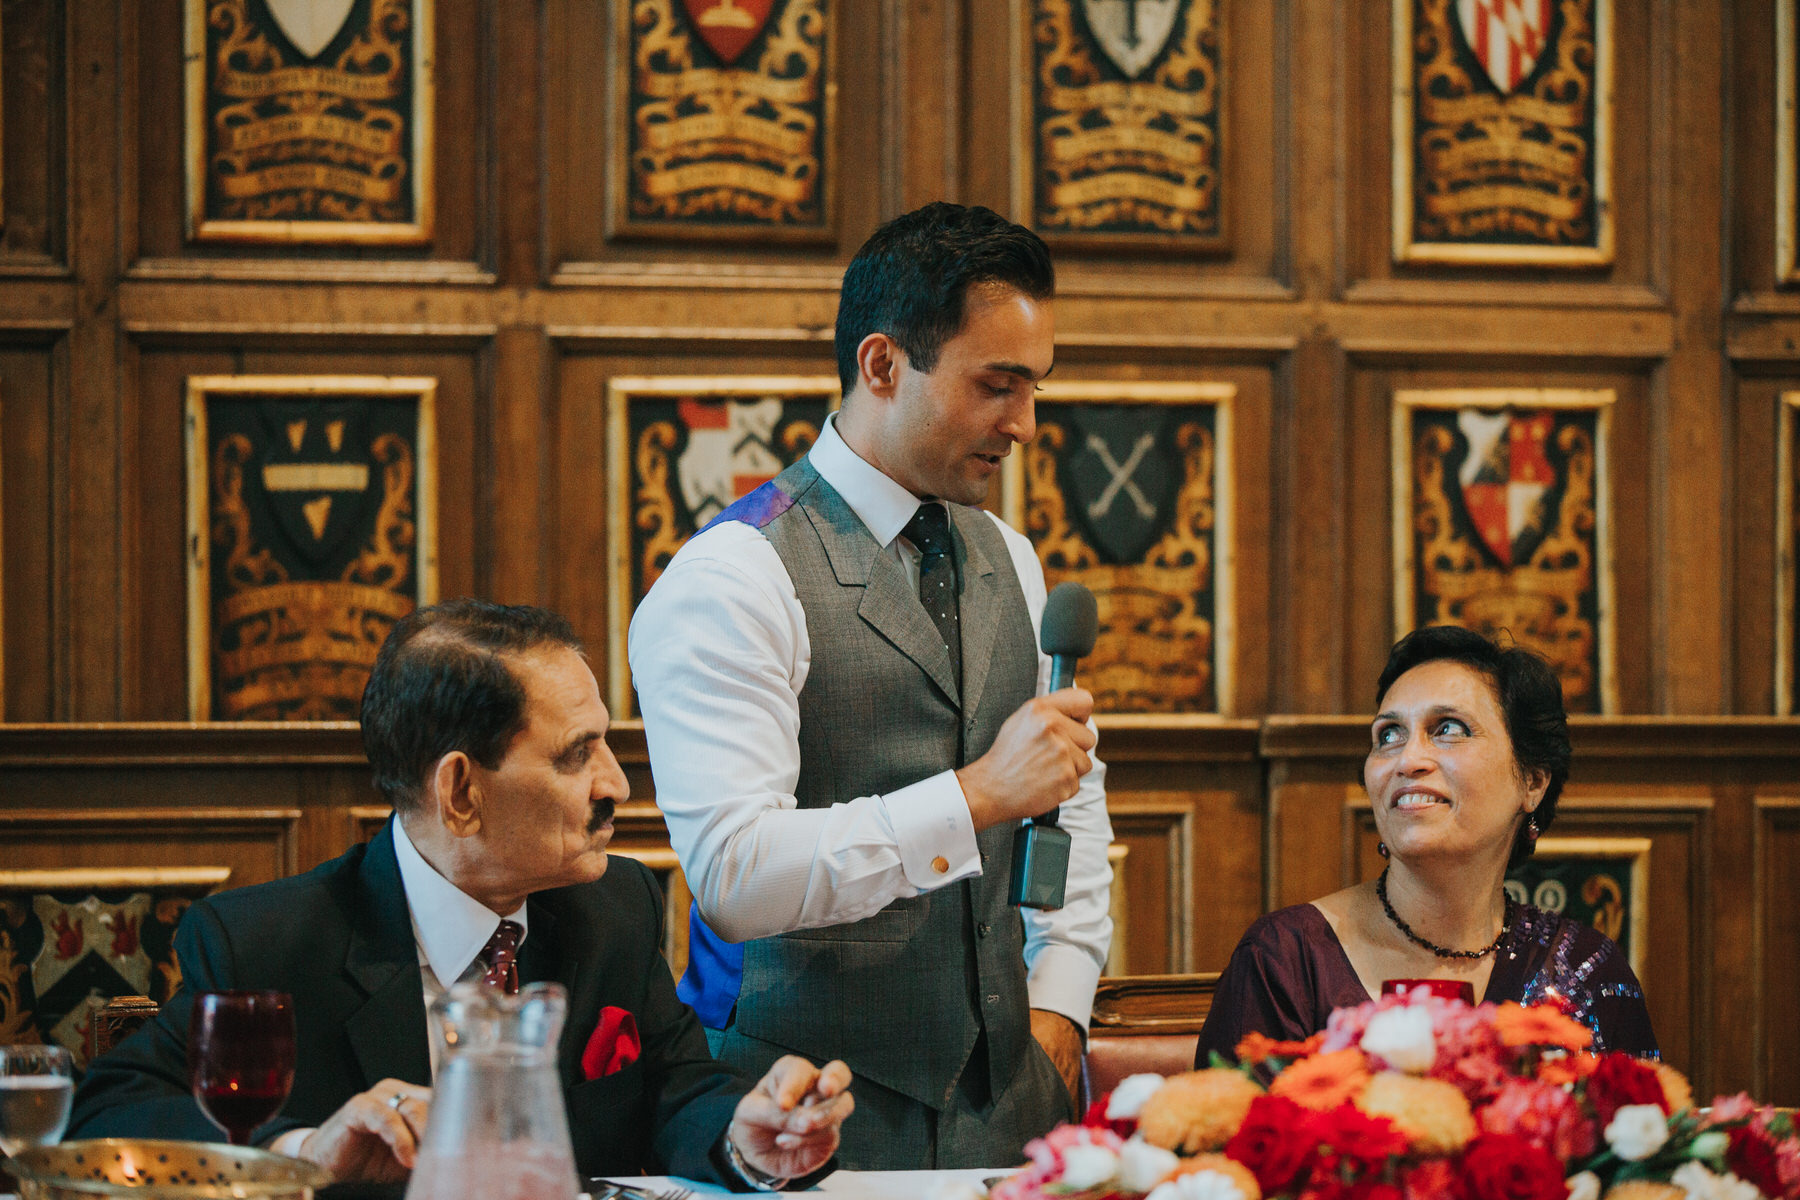 201-Anglo-Asian-Wedding-speeches-brother-Middle-temple.jpg